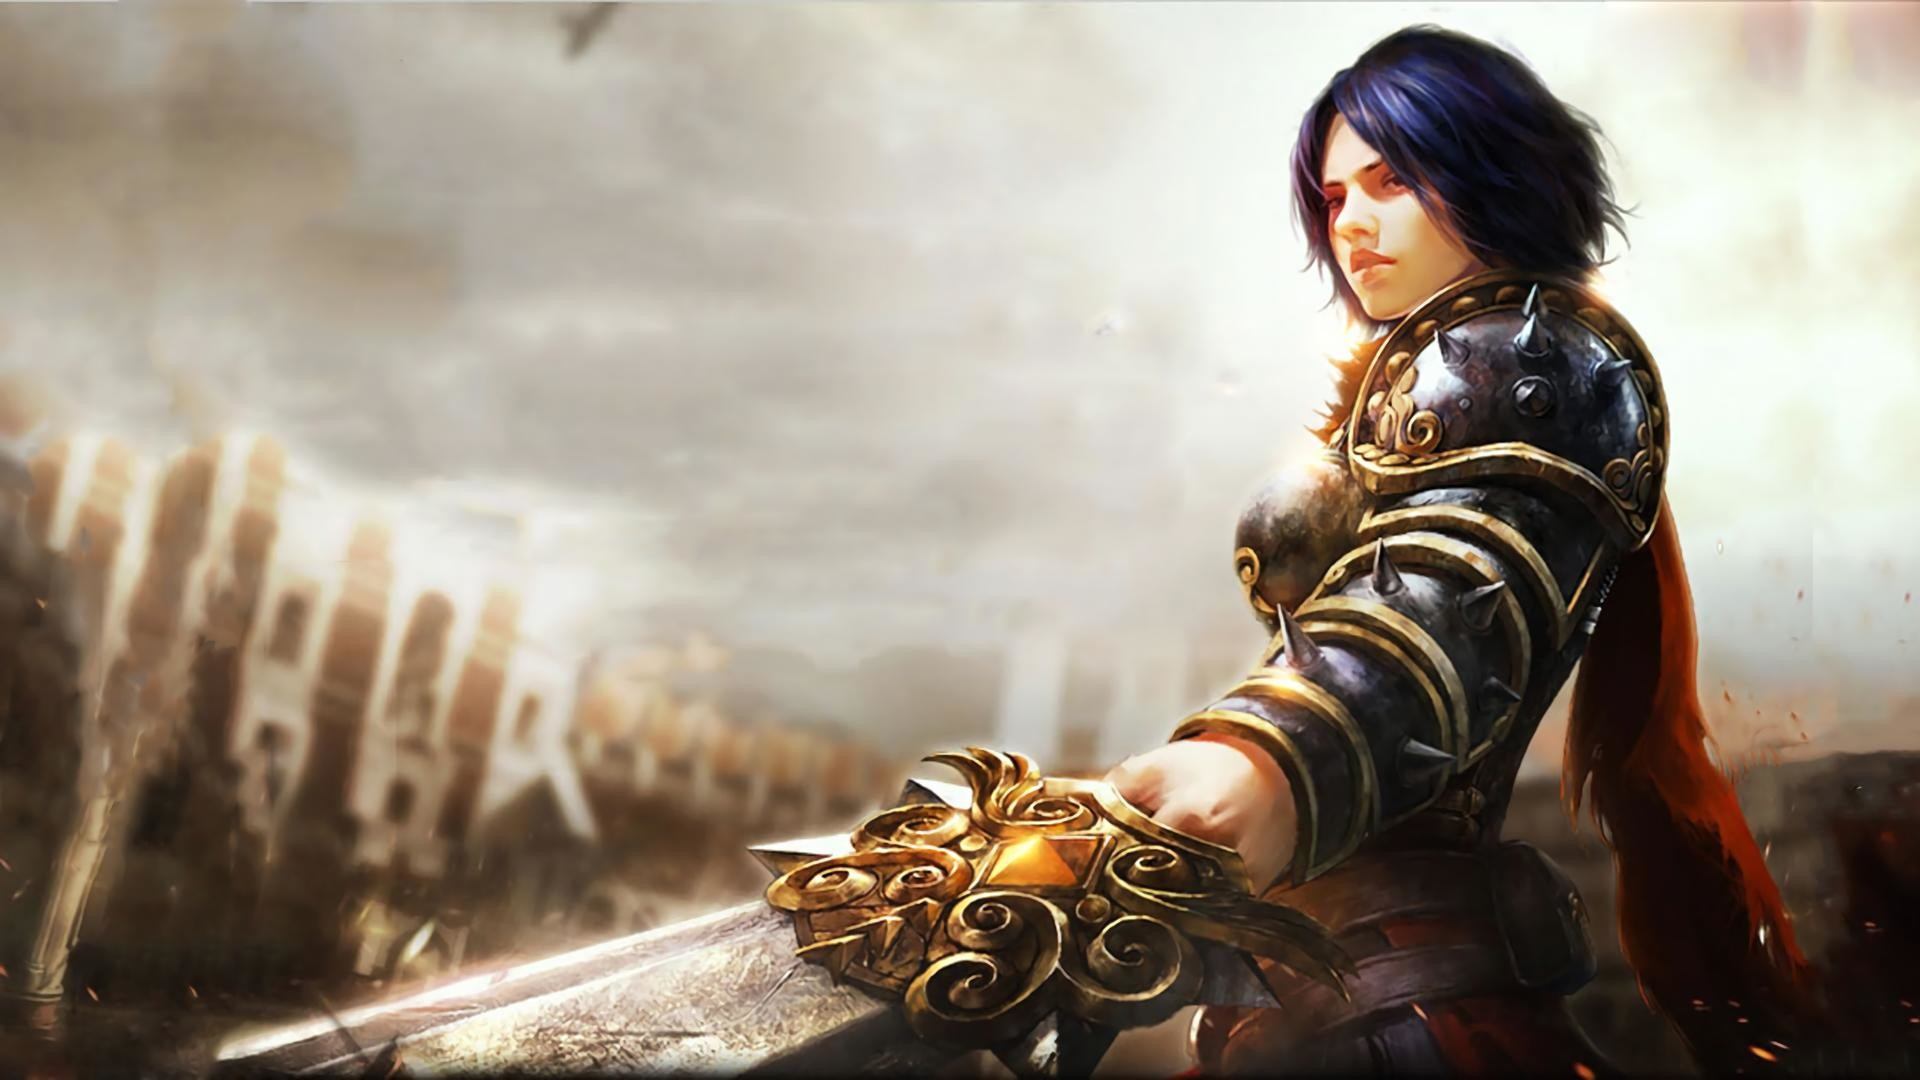 Imgur Anime Wallpaper Hd Girl Smite Wallpapers 1920x1080 91 Images